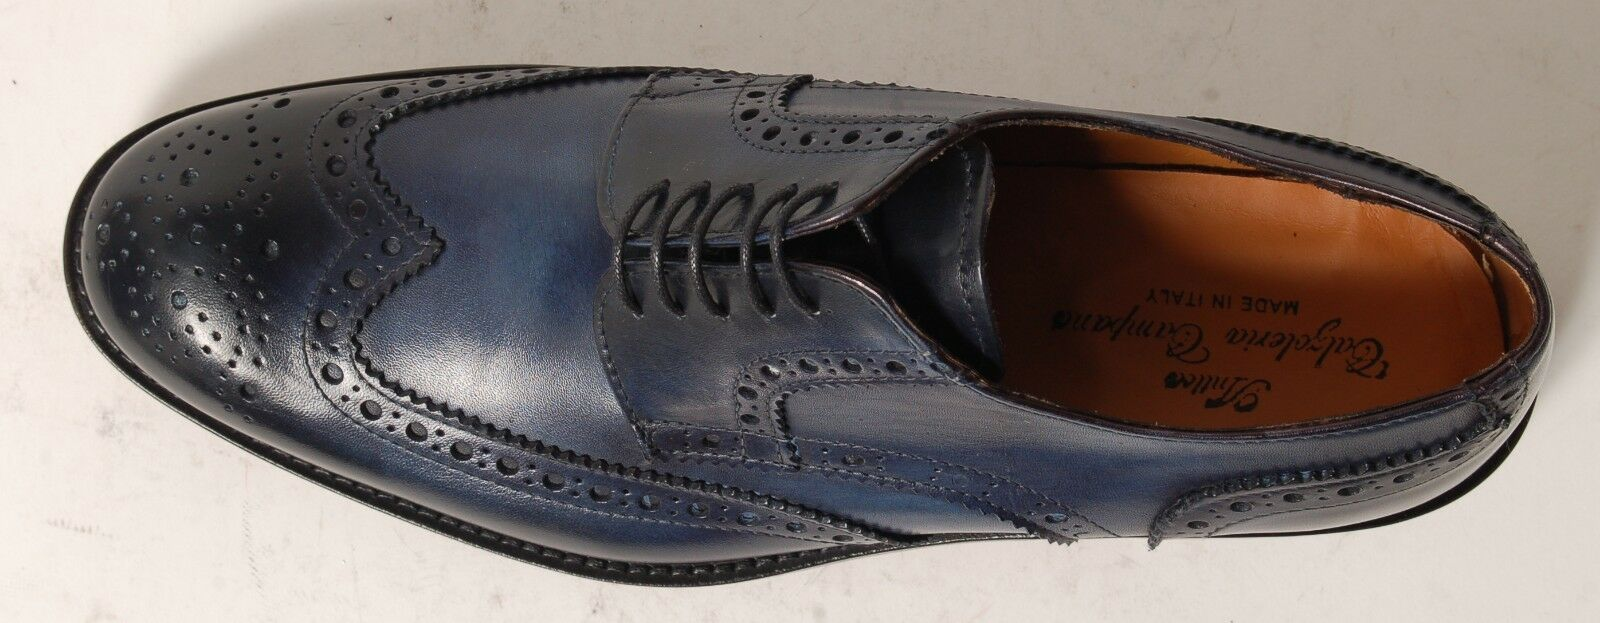 30% Remise 85feed Chaussures - Antica Calzoleria Campana Mod. 1220  Déstockage ! 50a1b88bc843